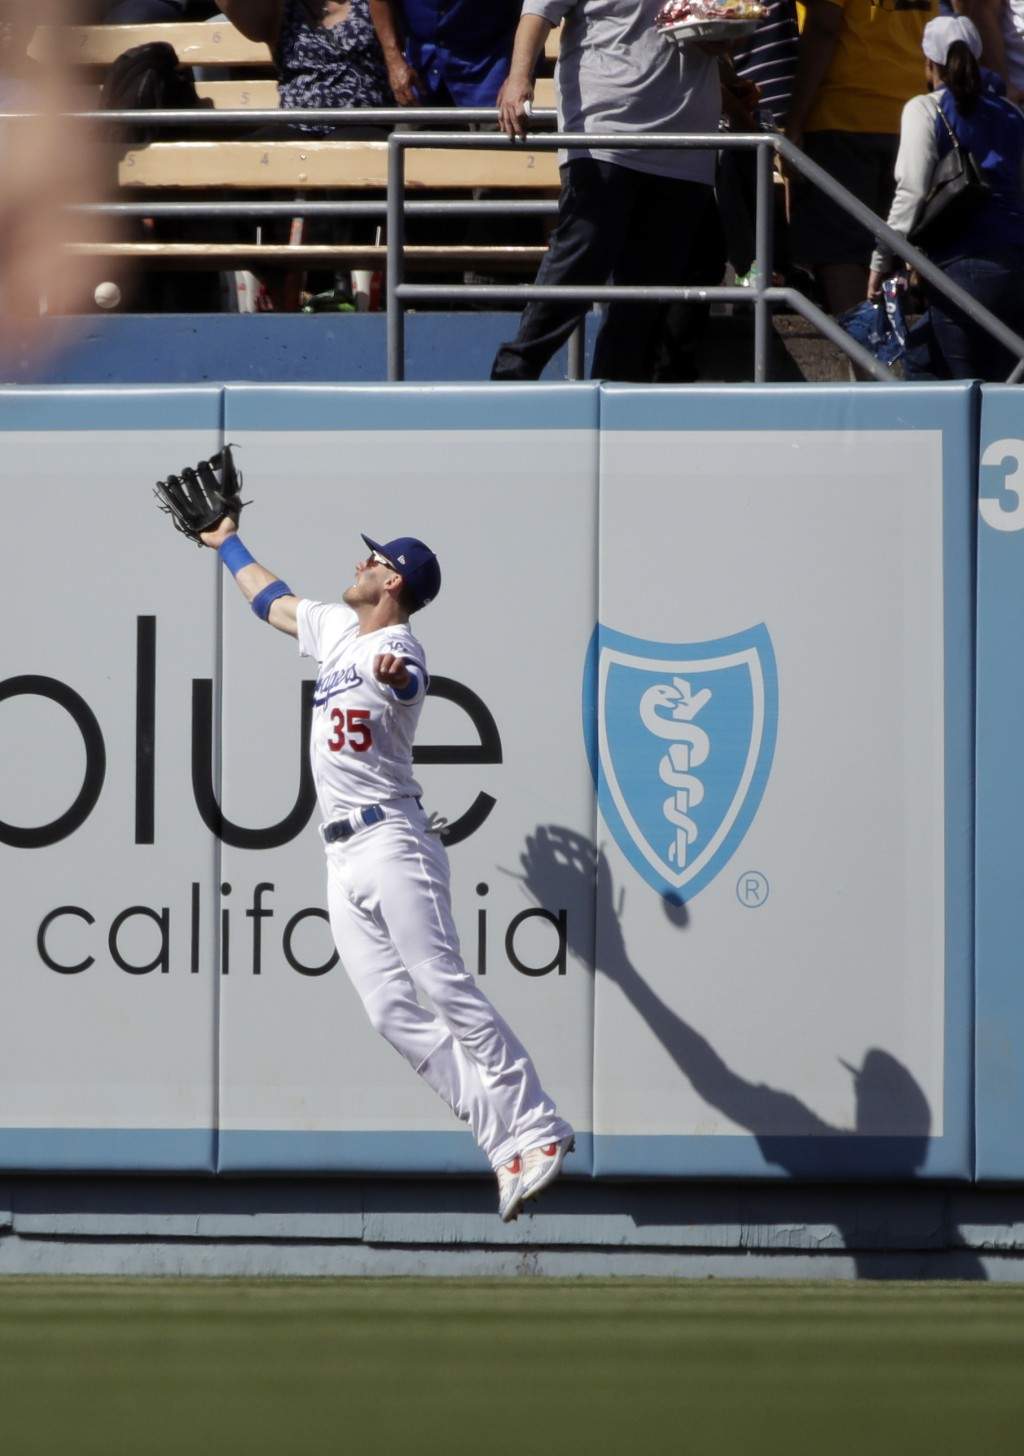 Los Angeles Dodgers right fielder Cody Bellinger makes a leaping catch on a fly ball from Colorado Rockies' David Dahl during the first inning of a ba...